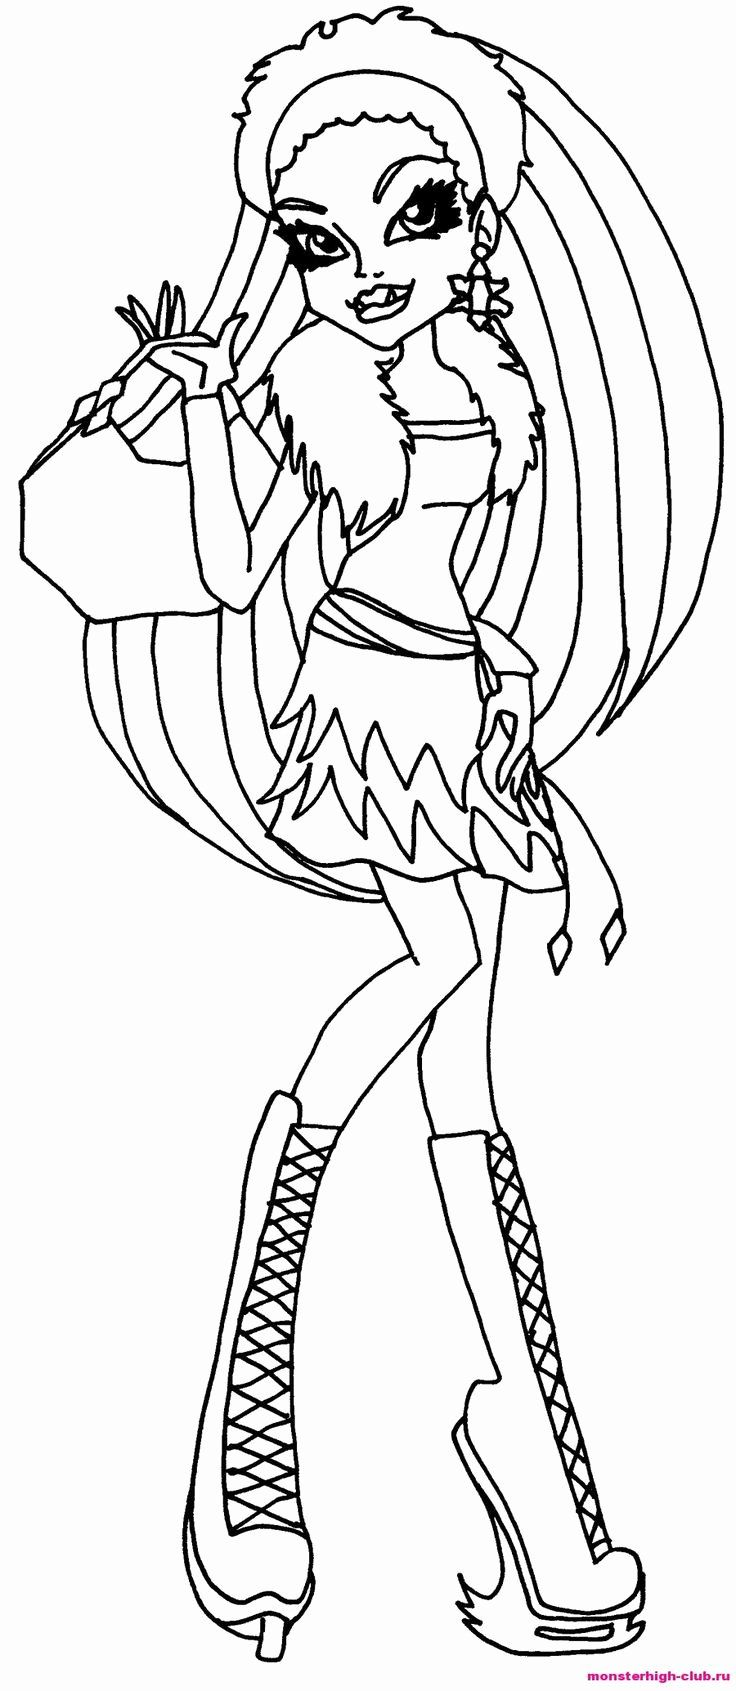 free colouring pages monster high 37 best images about colouring monster high on pinterest monster free colouring high pages